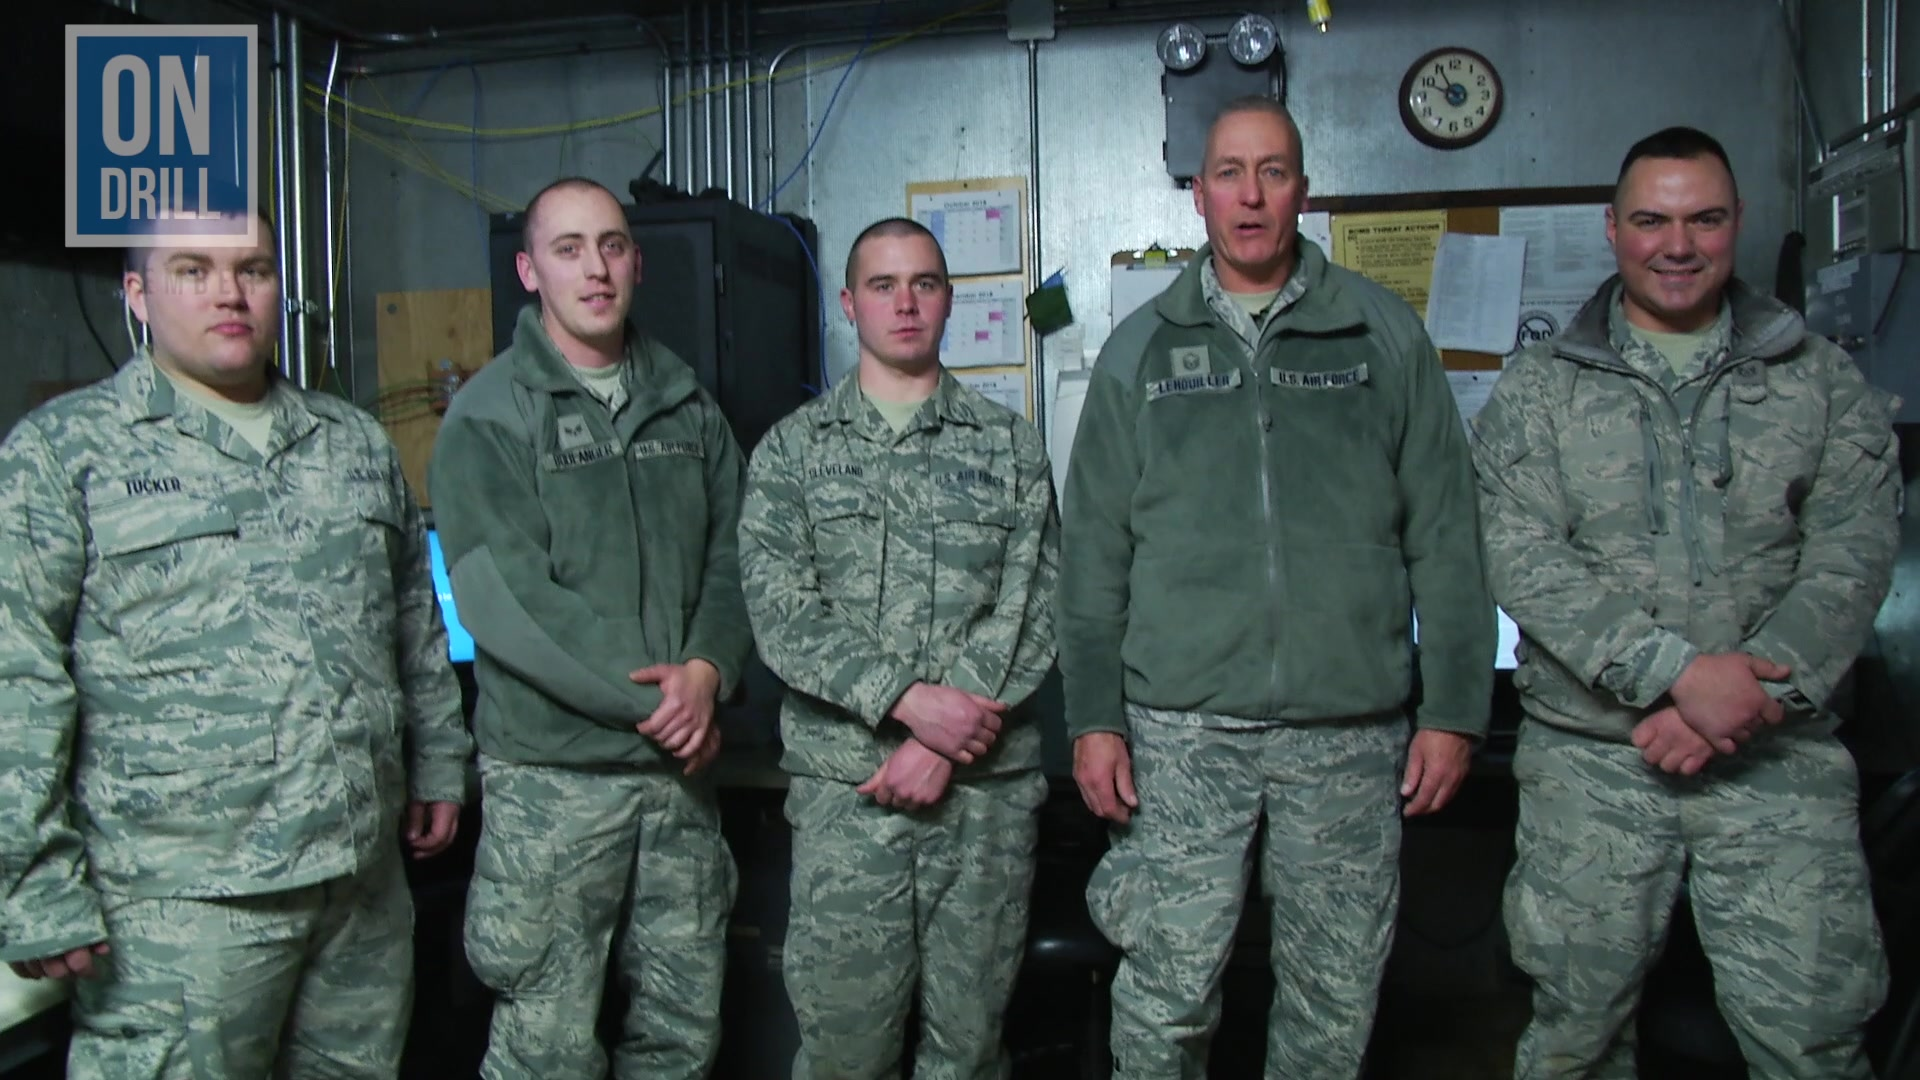 From the 158th Fighter Wing, we wish you the best this Holiday Season. Enjoy this Holiday edition of On Drill!